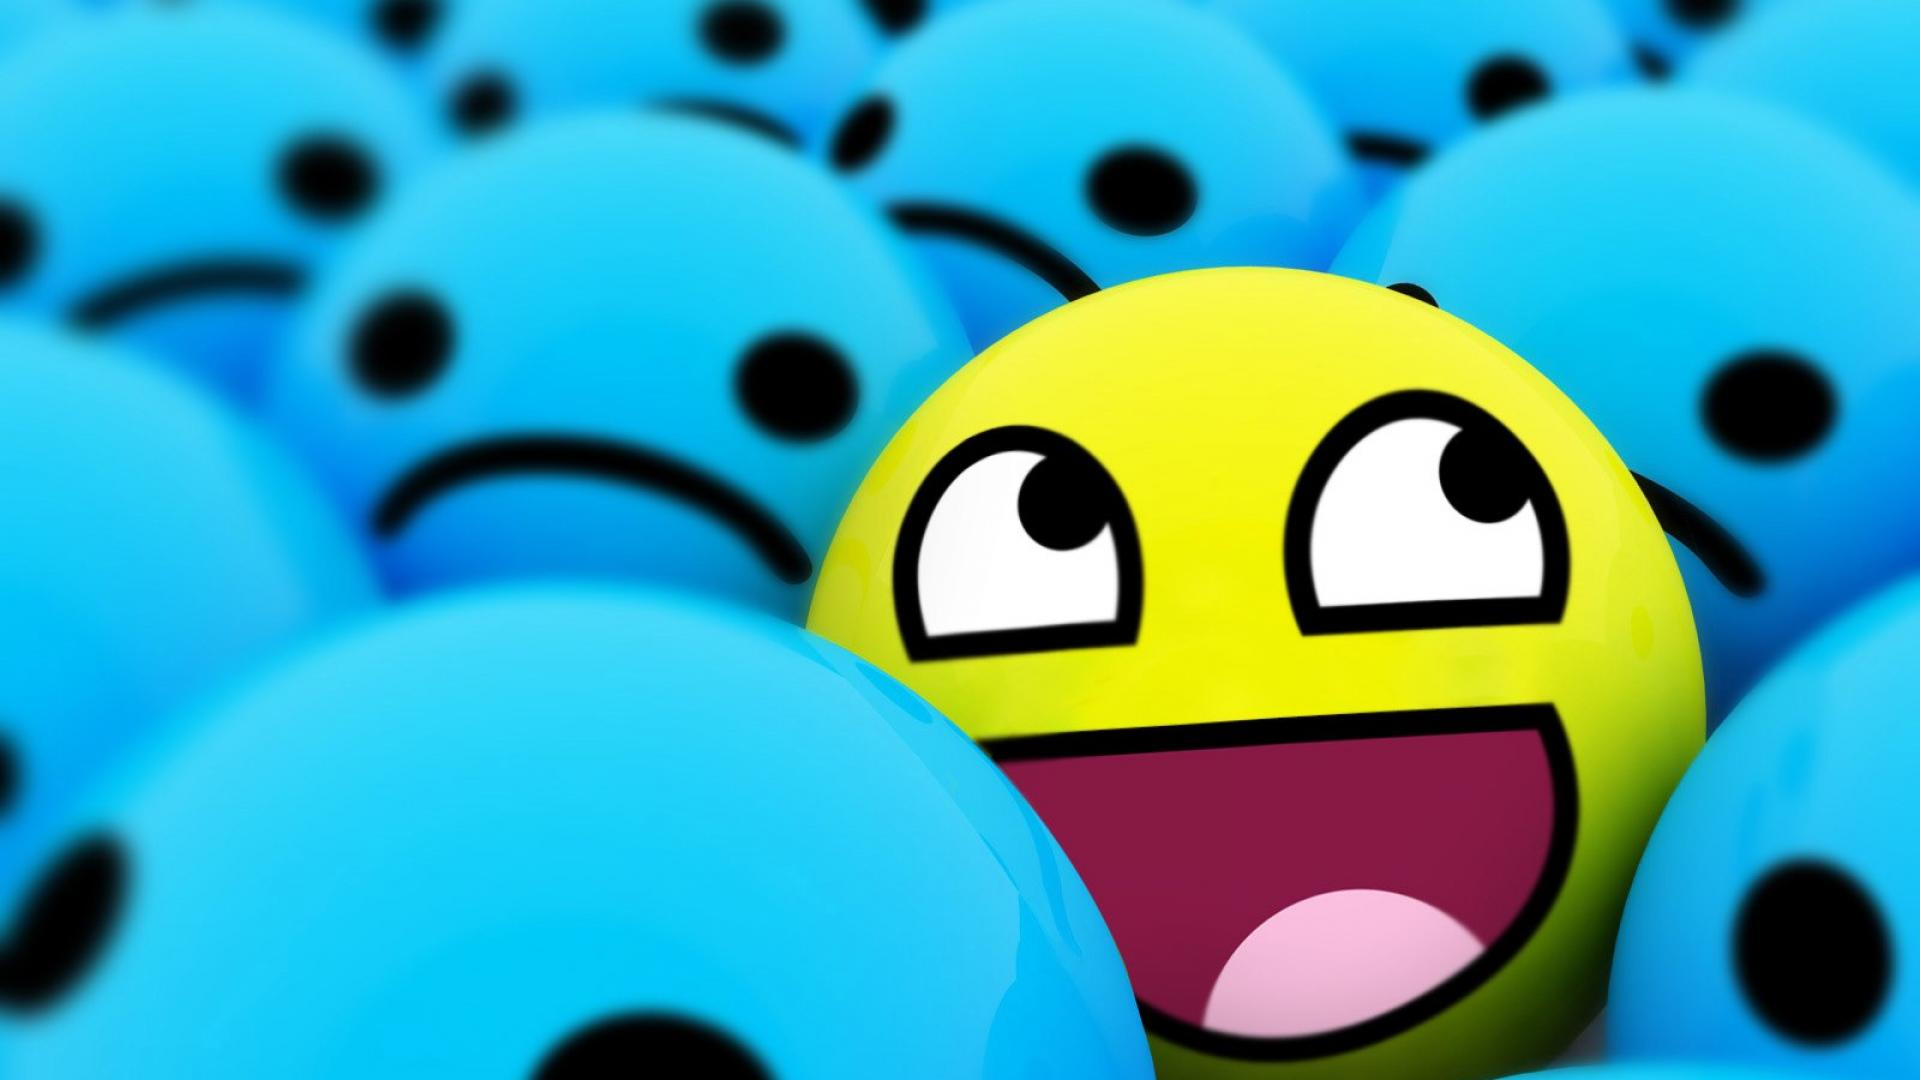 Wallpapers Smiley Face Hd Hq 1920x1080 | #99505 #smiley face